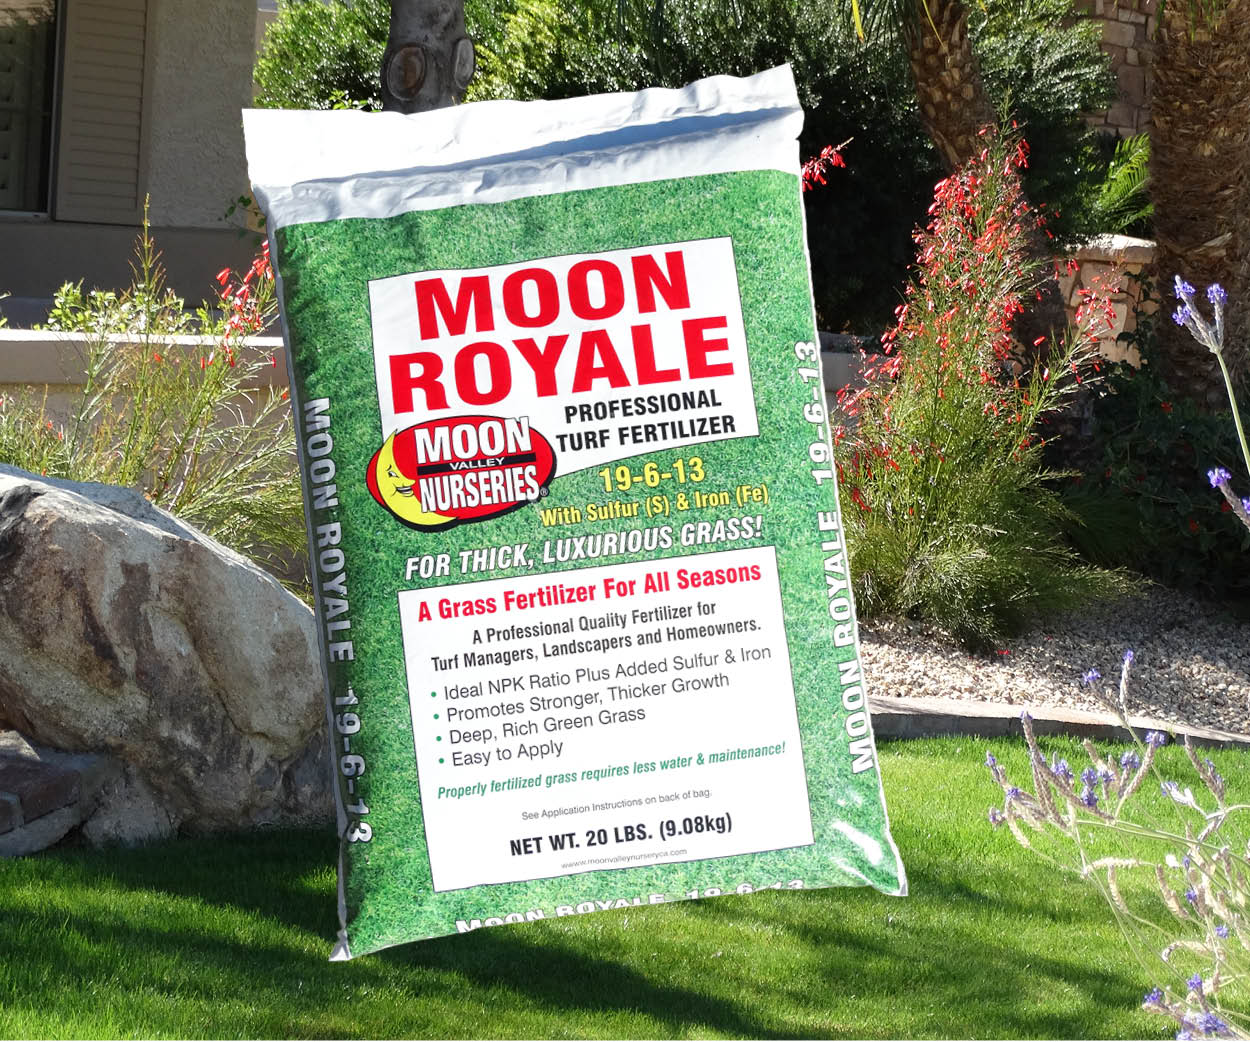 _moon_royale_